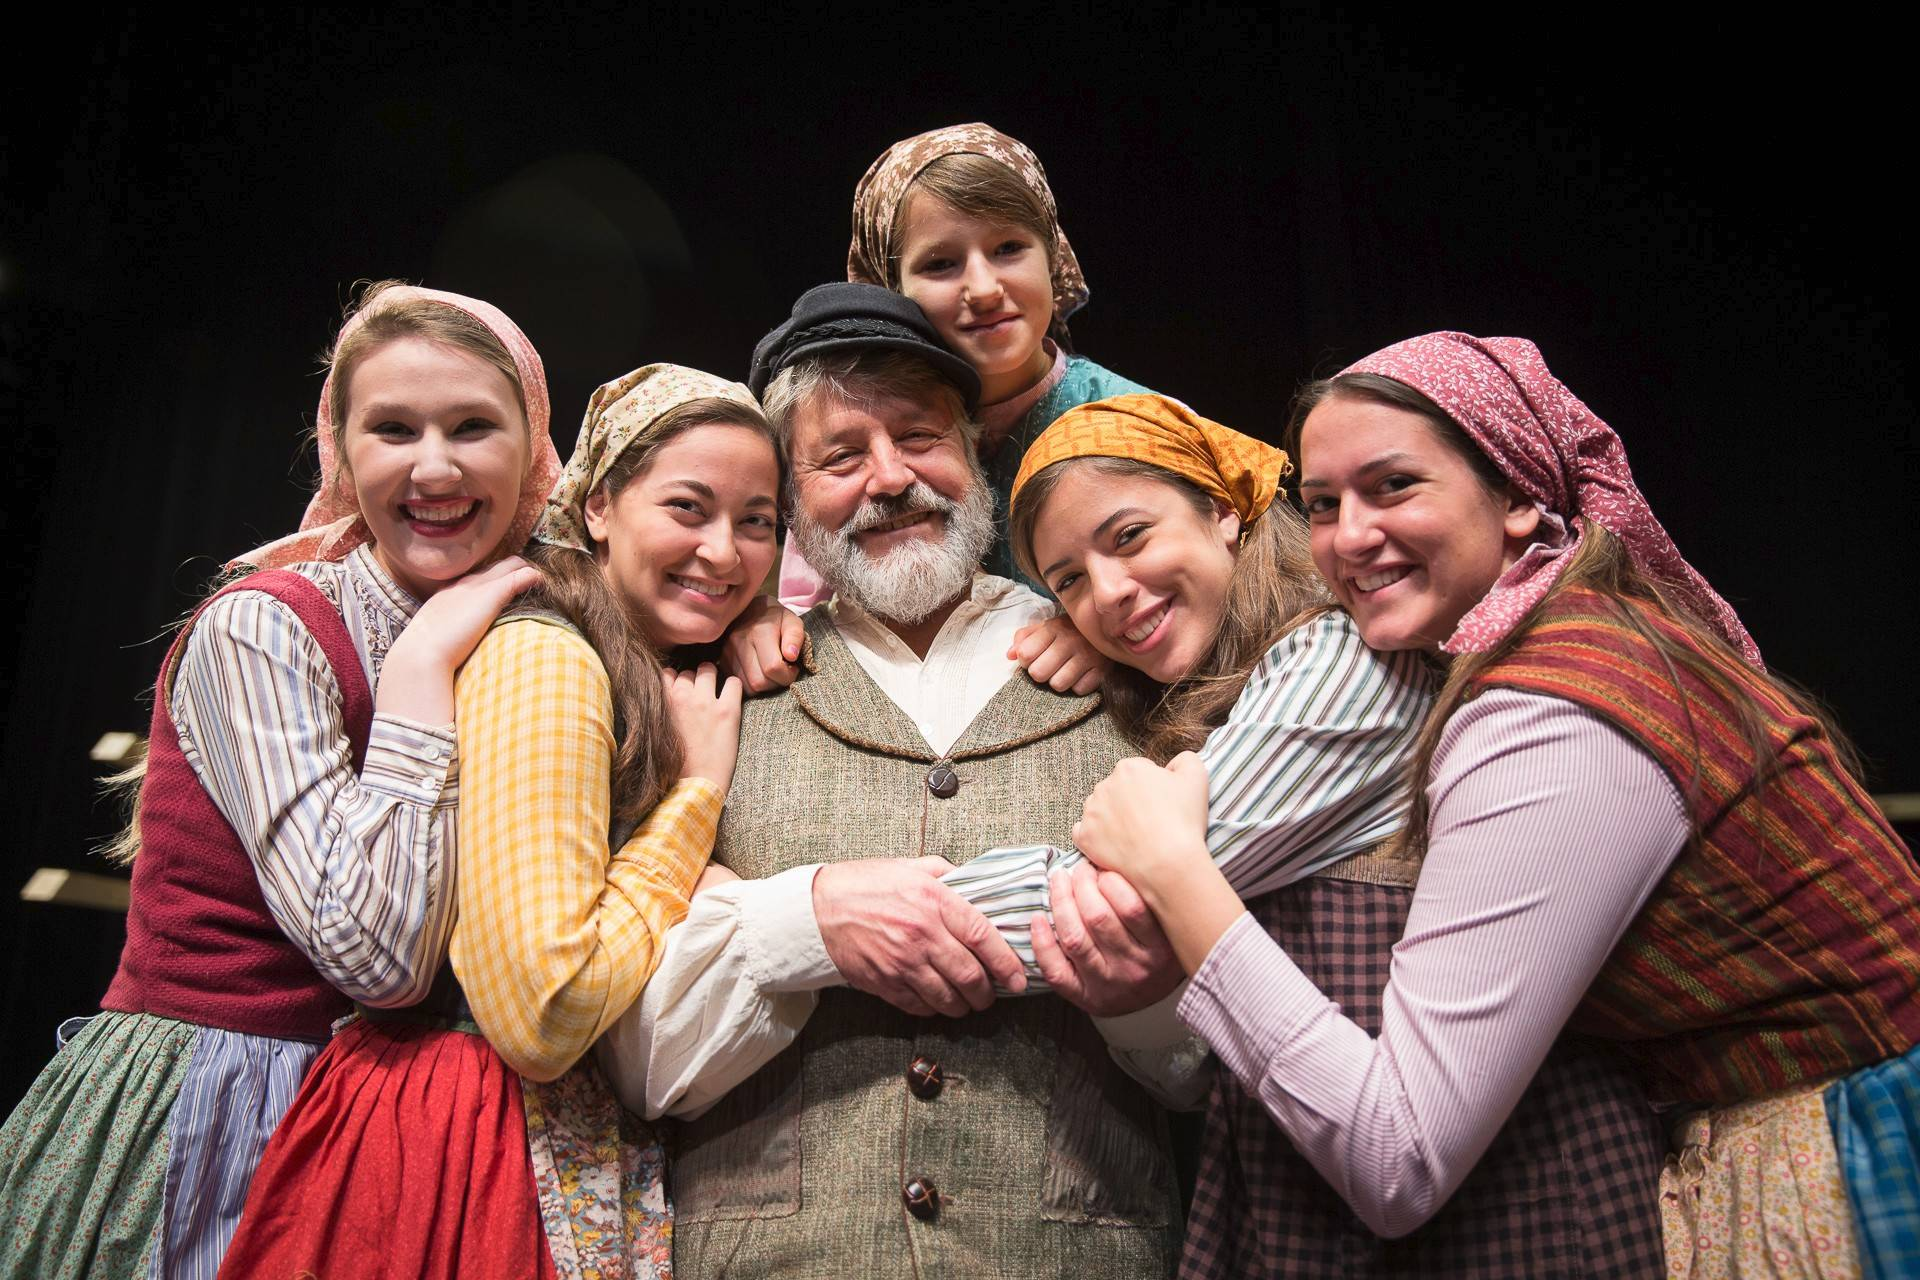 Tevye and his daughters, from left: Abigail Bjork of Sleepy Hollow; Amanda Torres, Rolling Meadows; Iva Galic, Des Plaines; Alyssa Michelle Peterson, Hoffman Estates and Becca Hess, Park Ridge.